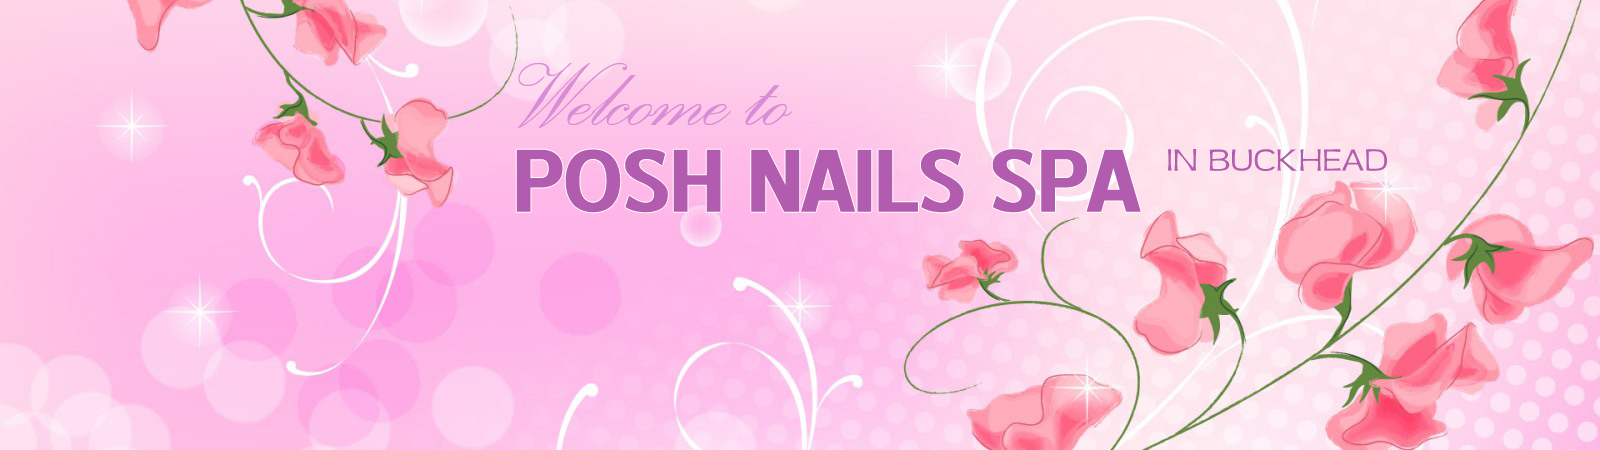 Posh Nails Spa – Professional Nail & Spa Salon